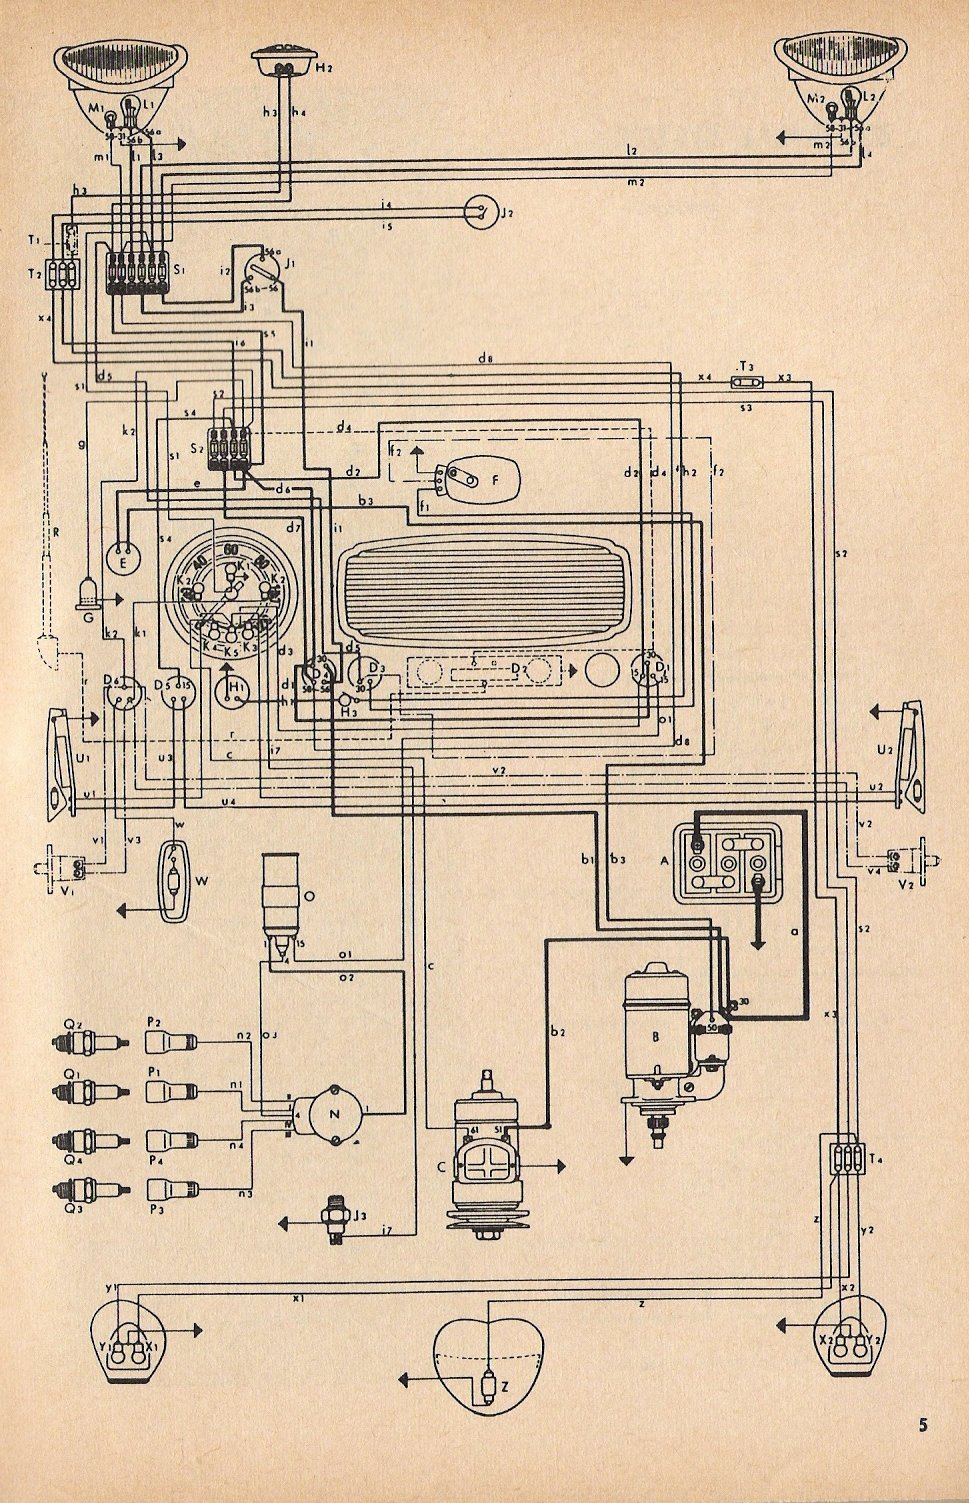 Type 1 Wiring Diagrams Ammeter Diagram 1952 Chevrolet